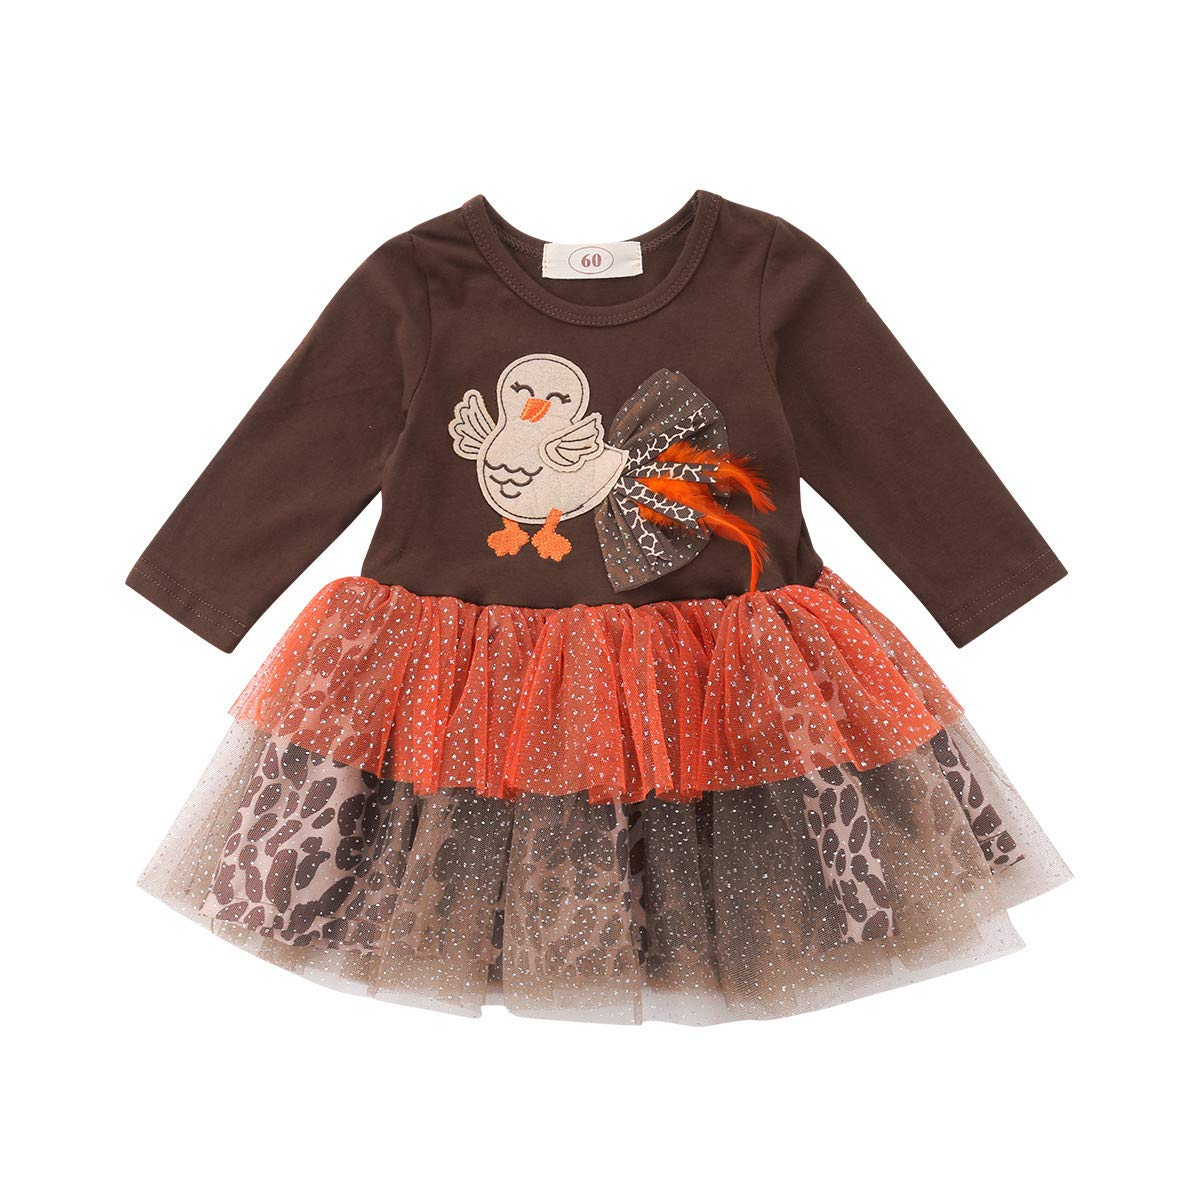 FUFUCAILLM Baby Girl Thanksgiving Outfit Dress Turkey Leopard Tulle Tutu